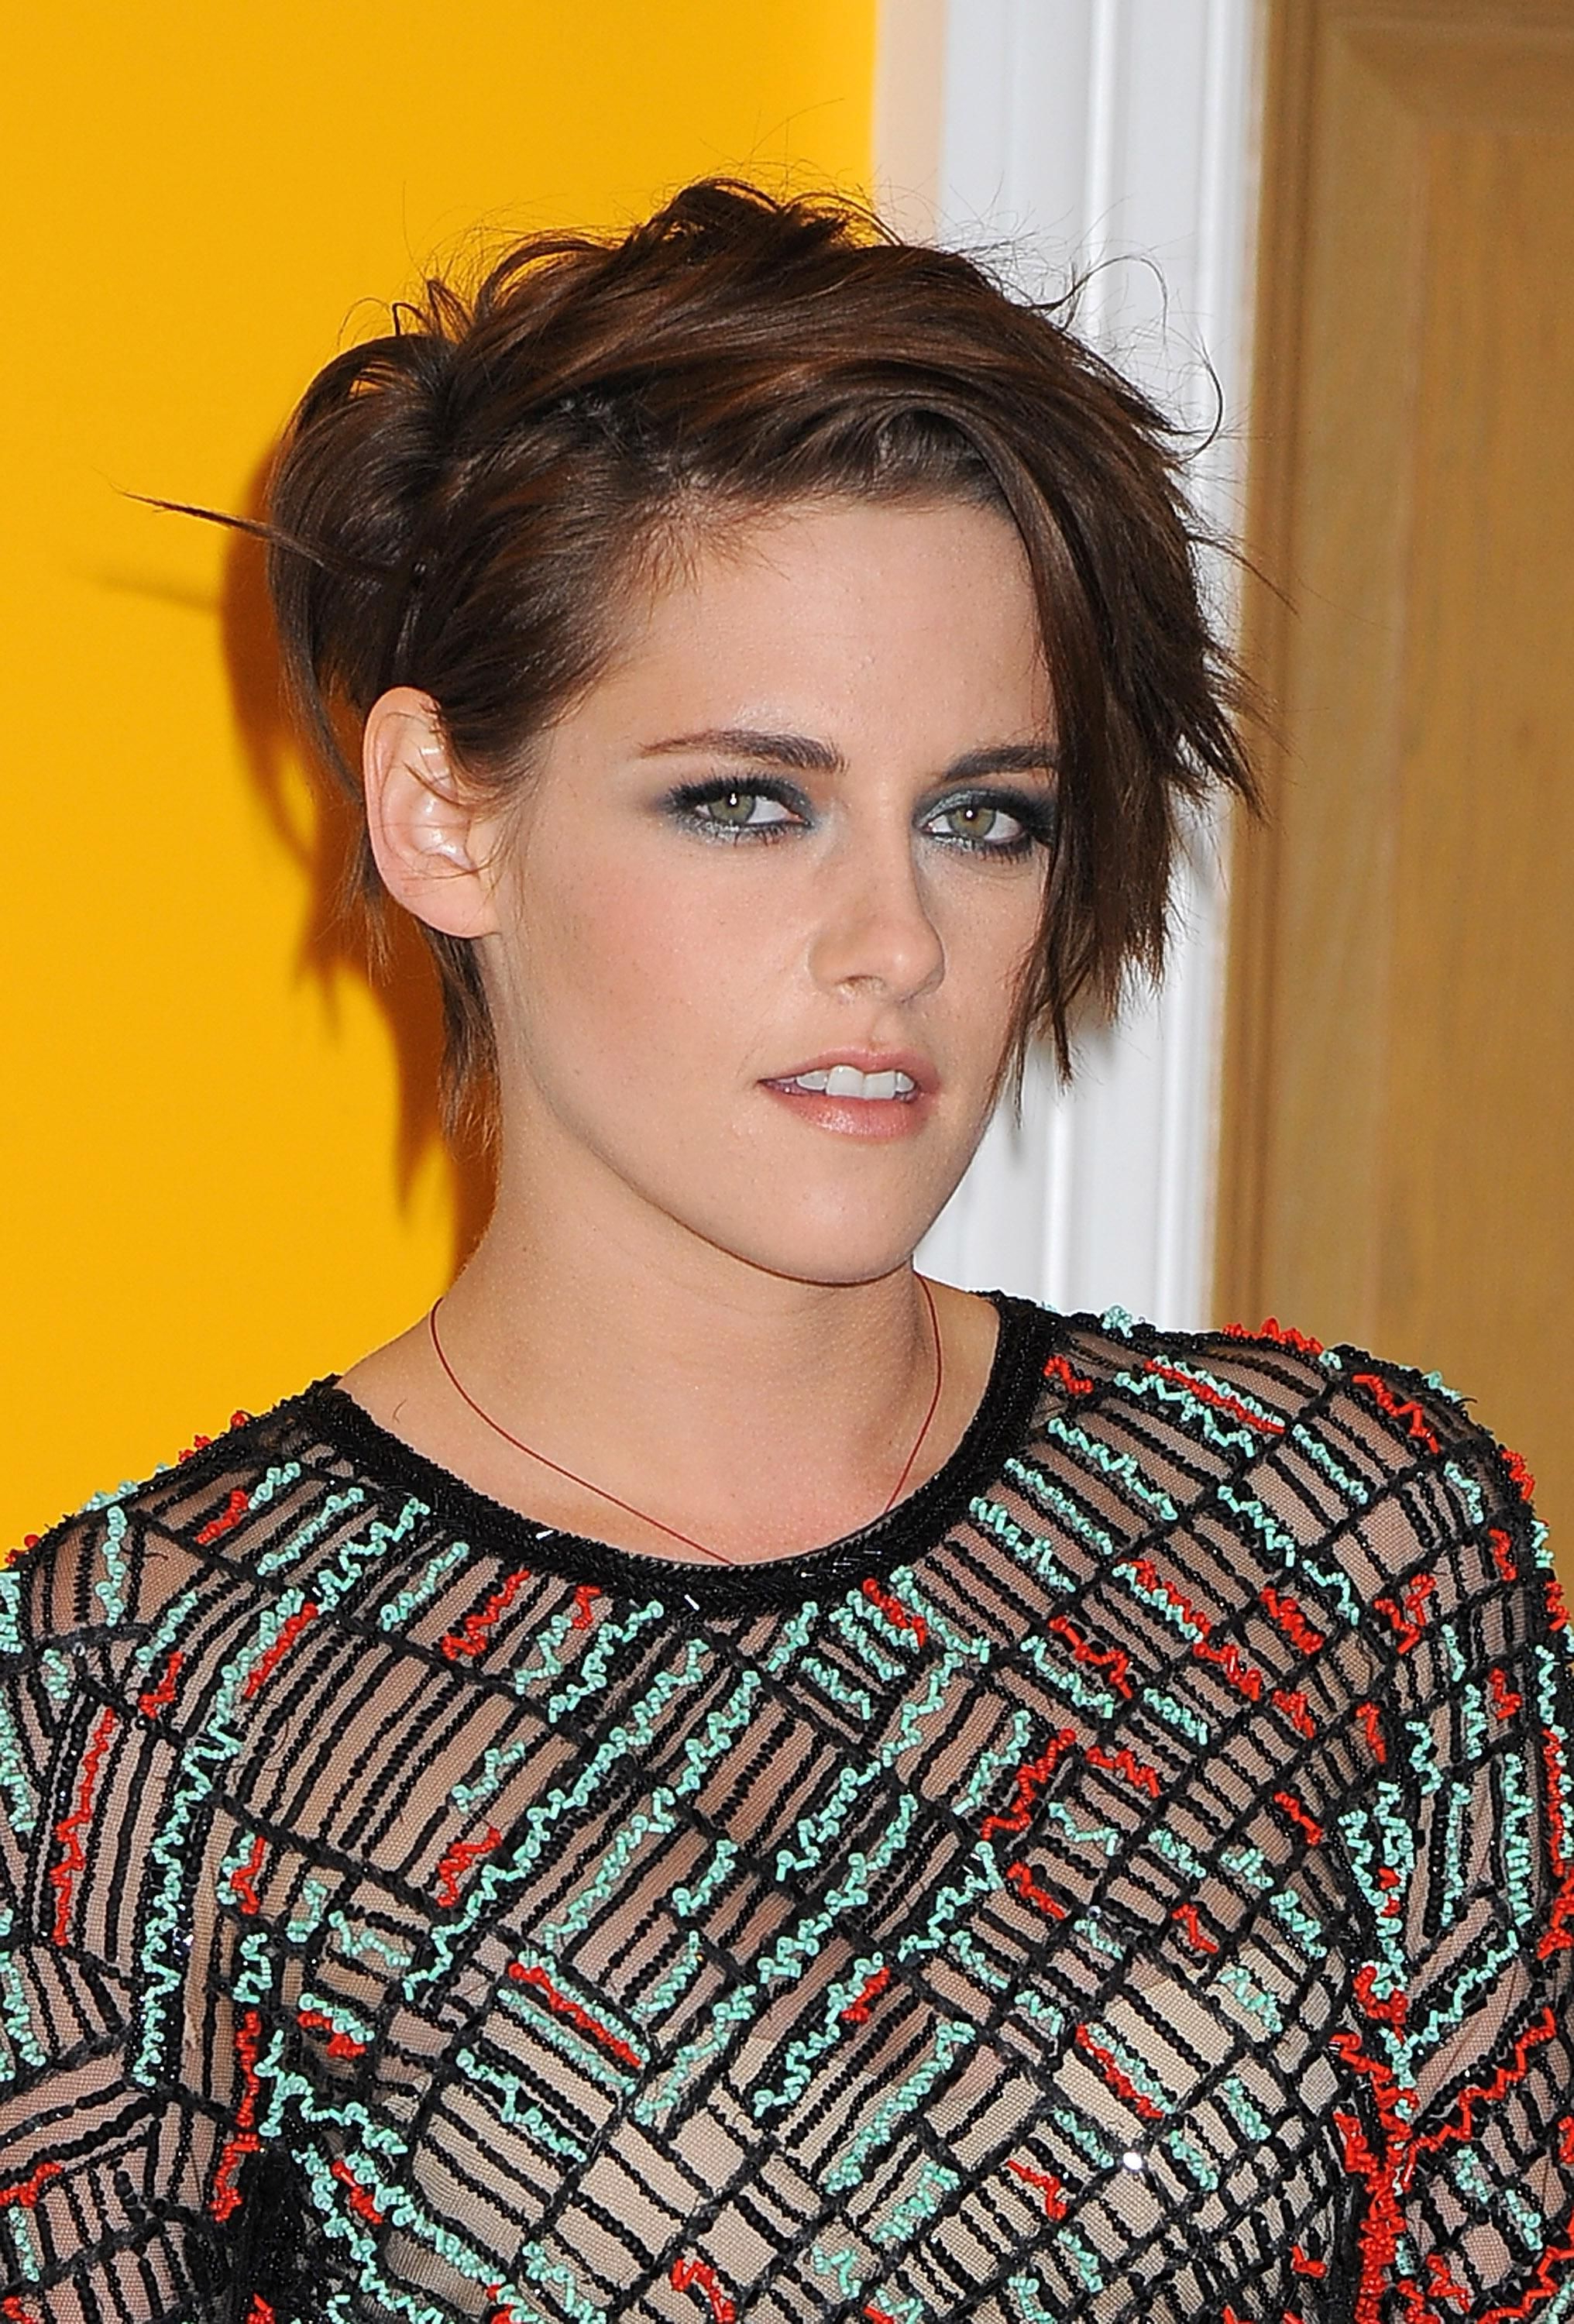 Get Kristen Stewart's Sultry Makeup And Stylish Pixie | Cant Print For Sexy Pixie Hairstyles With Rocker Texture (View 14 of 20)